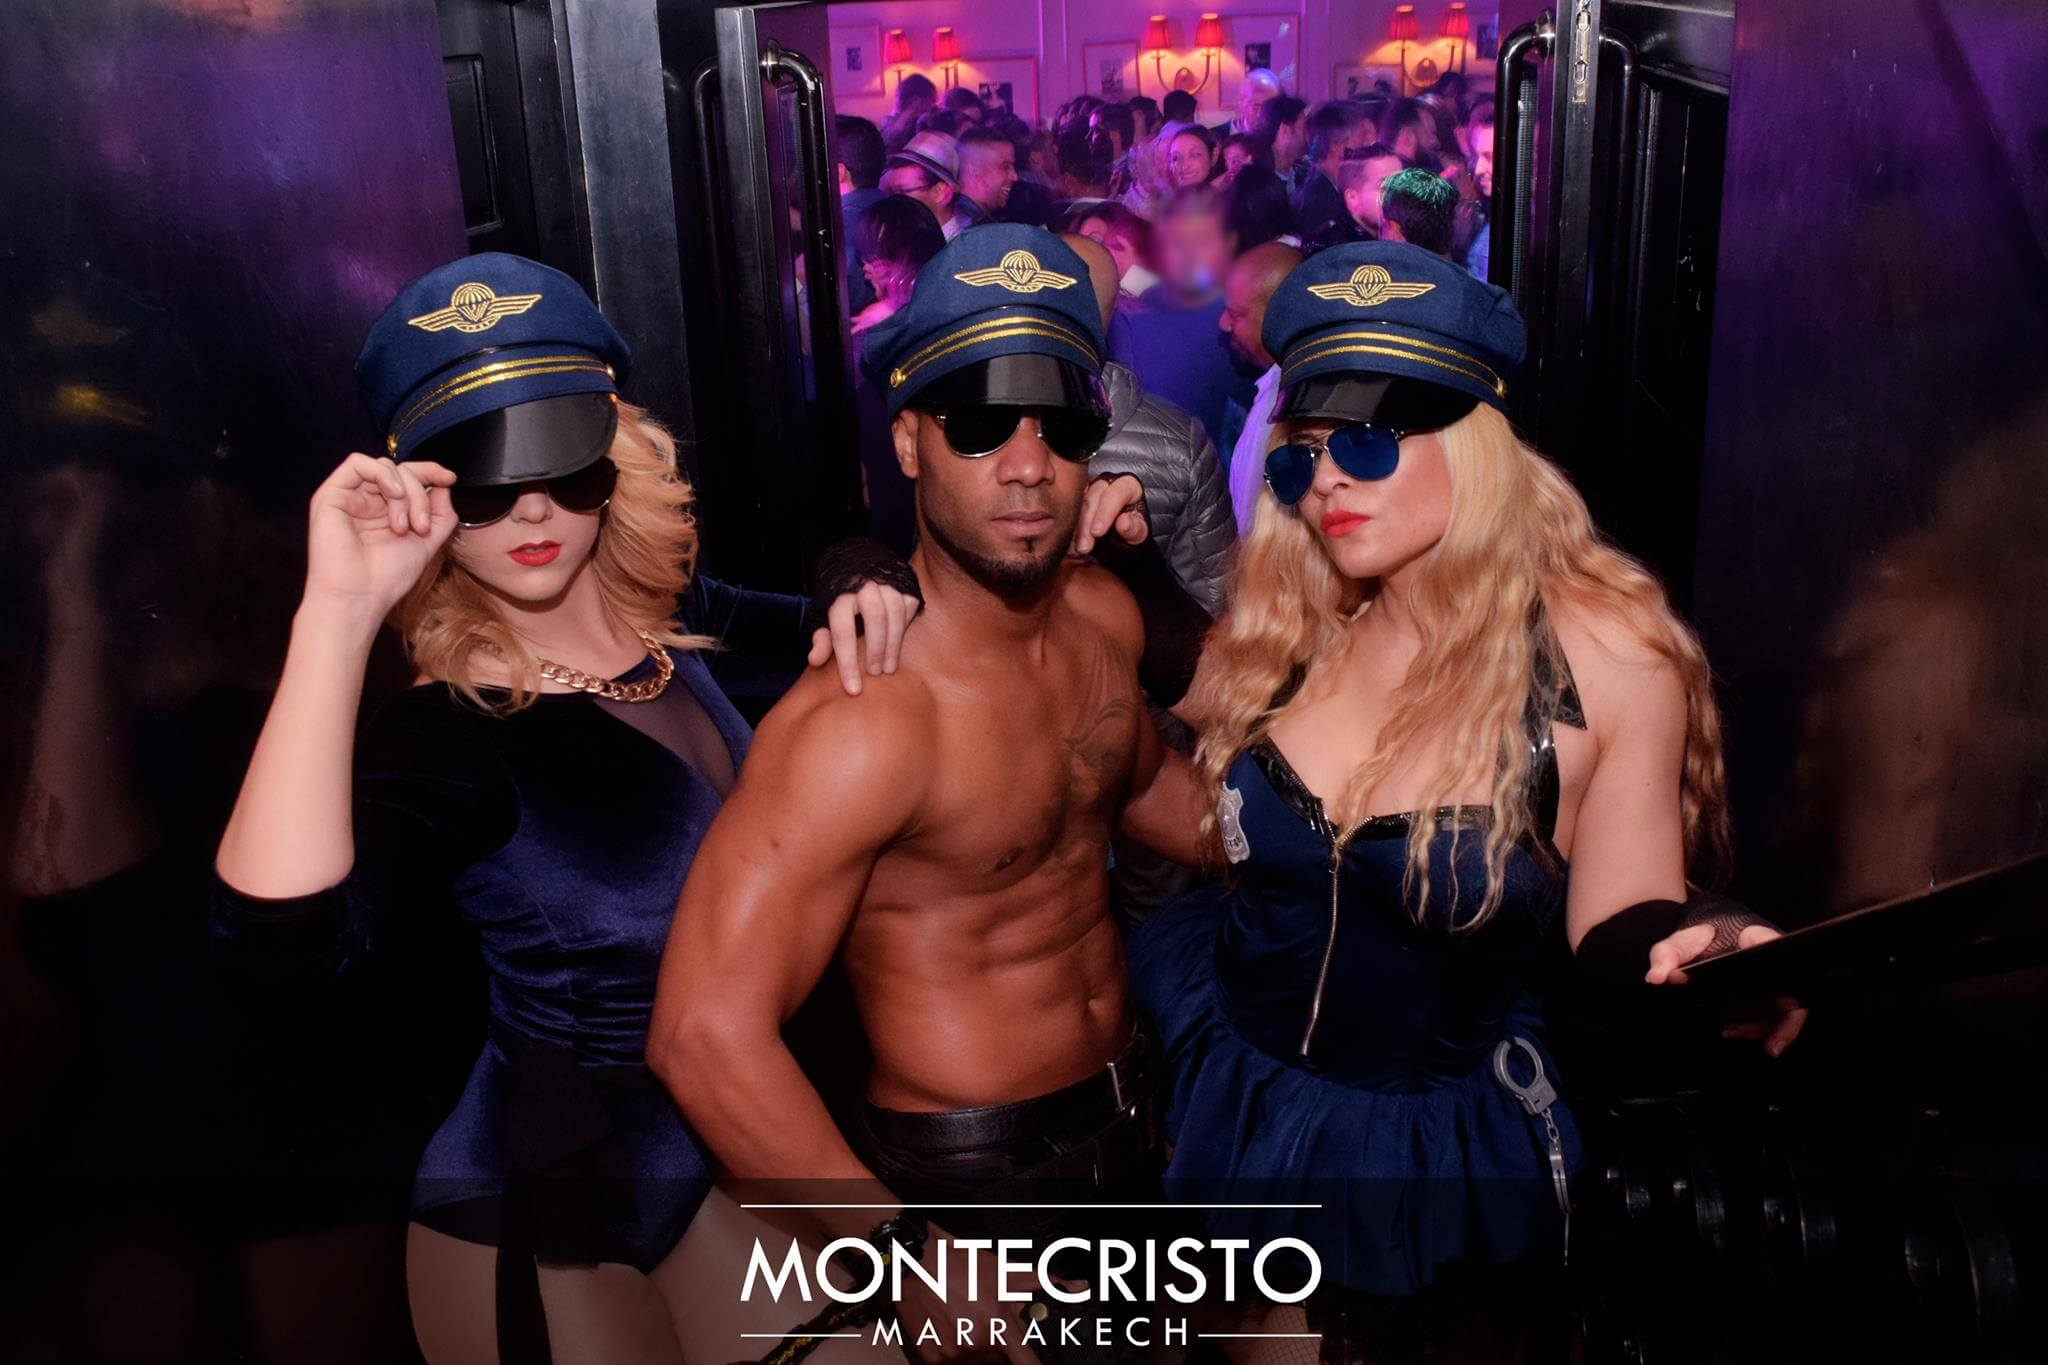 Night-Club Monte Cristo in Marrakesch